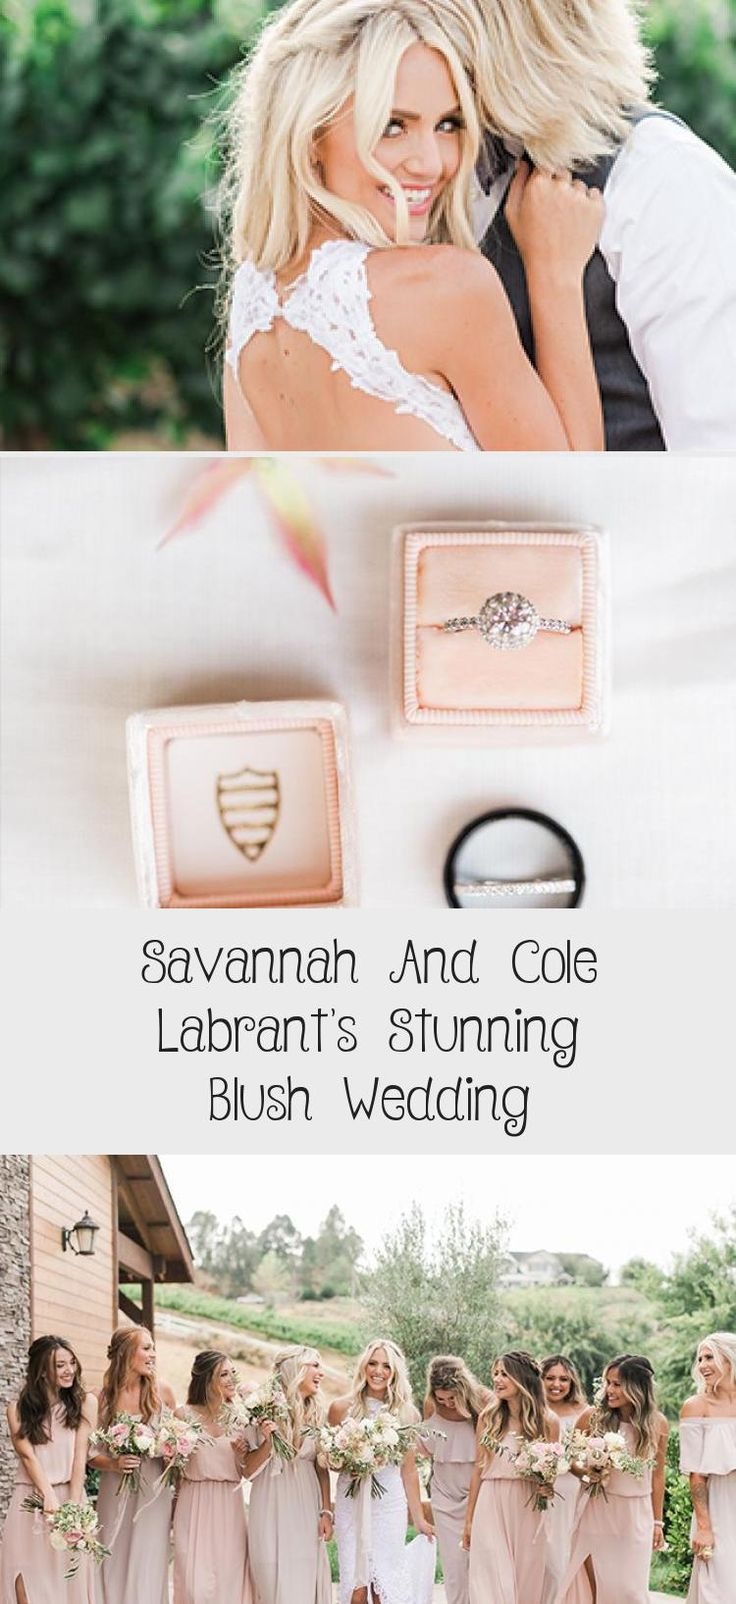 Savannah and Cole LaBrant's Stunning Blush Wedding - Inspired By This #VelvetBridesmaidDresses #BridesmaidDressesLong #BridesmaidDressesColors #BridesmaidDressesTwoPiece #BridesmaidDressesWithSleeves